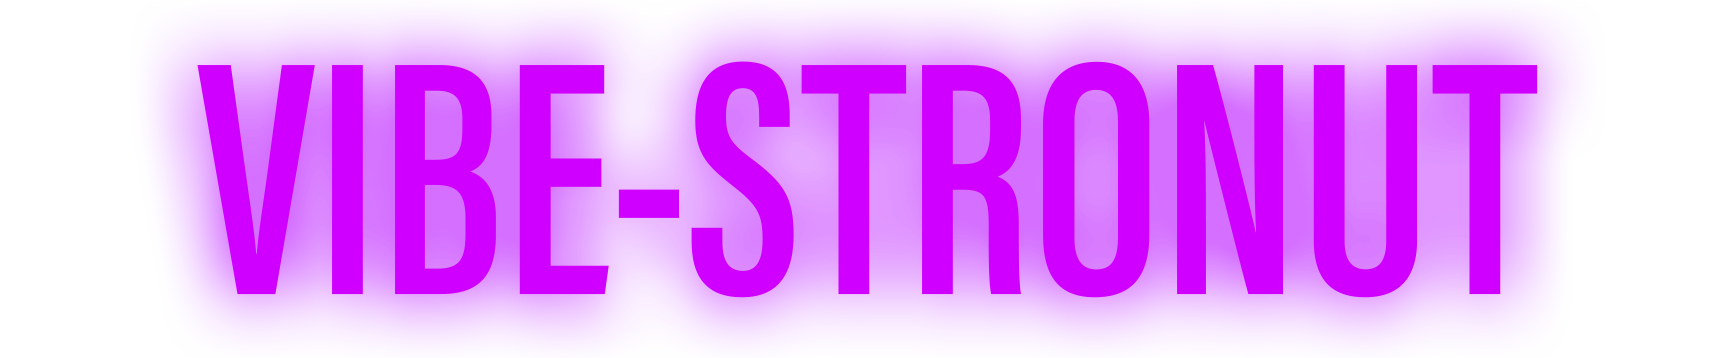 vibe stronut.png